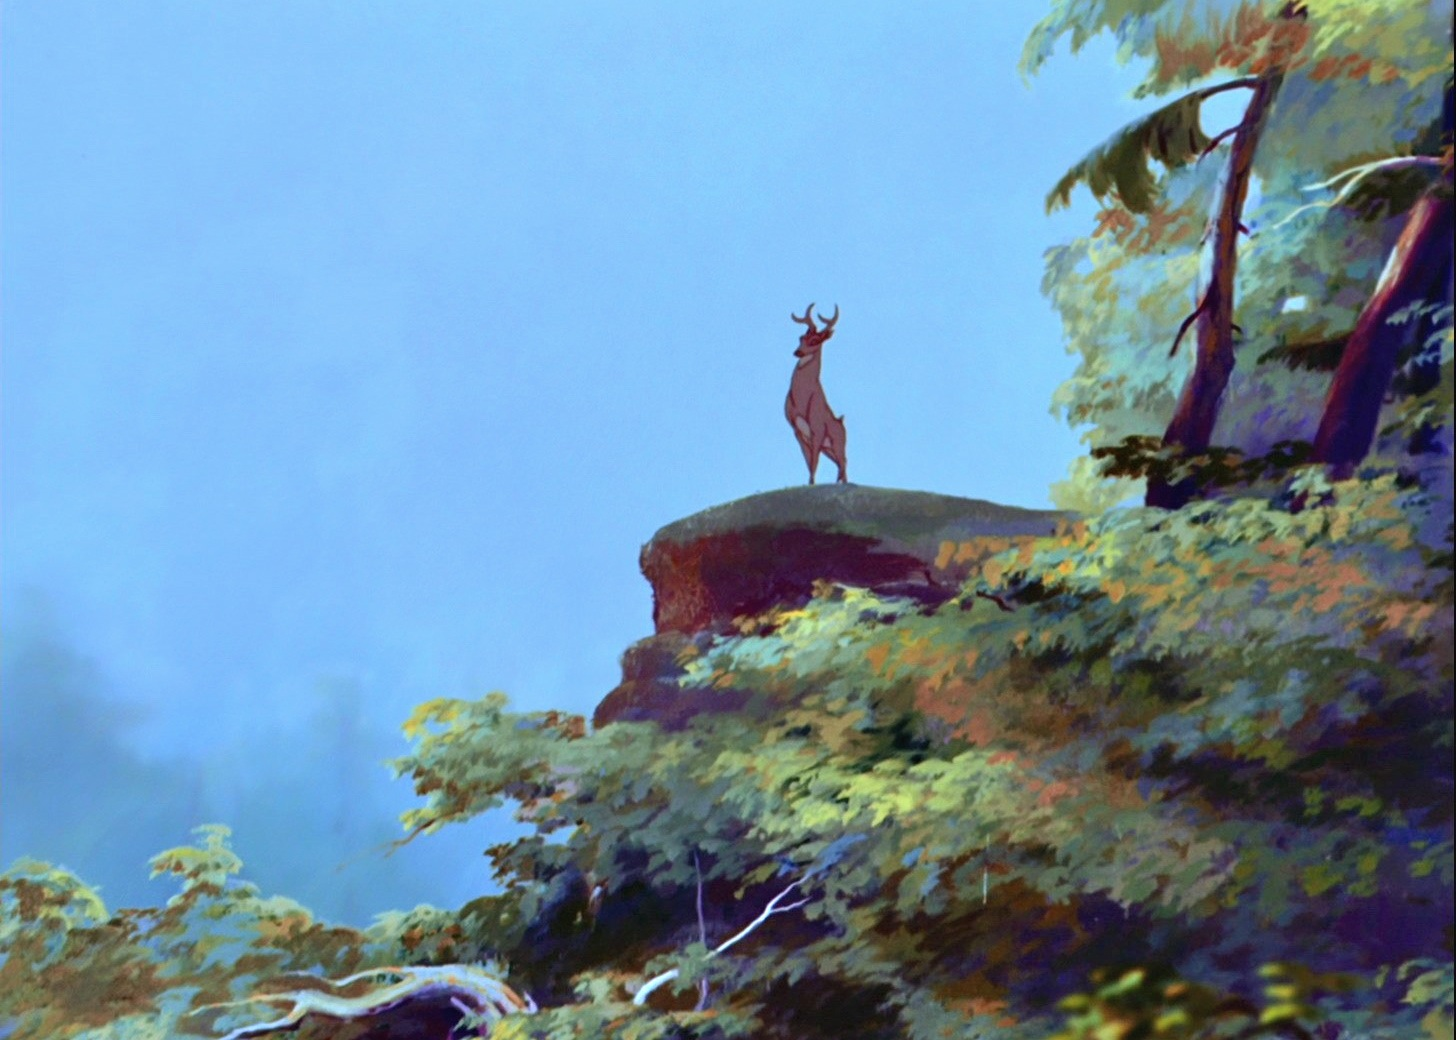 bambi vs. bambi: a life in the woods – disneyfied, or disney tried?